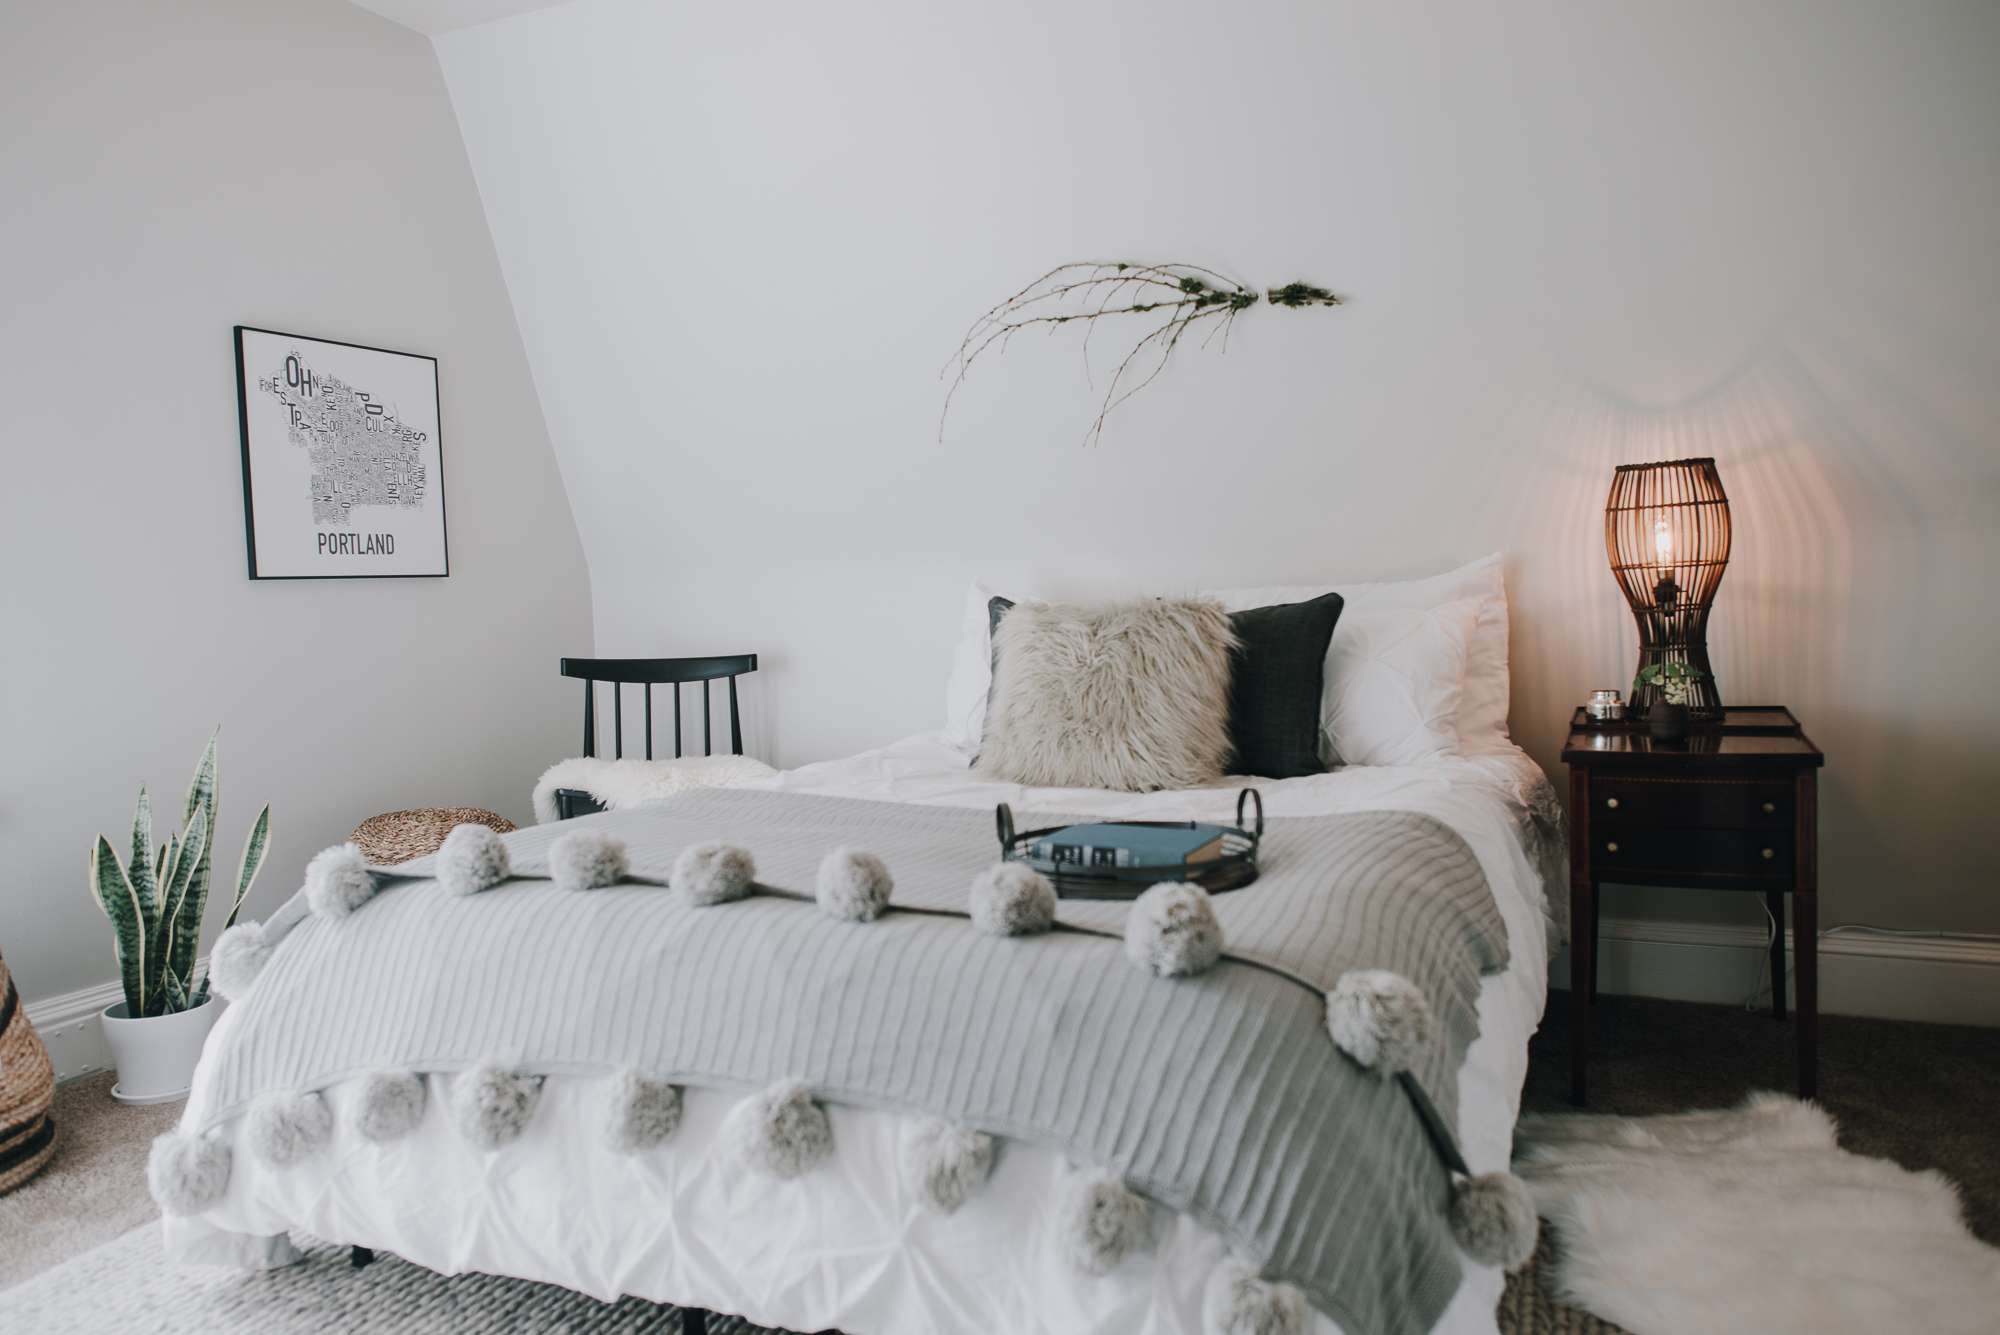 Bedroom with a tray